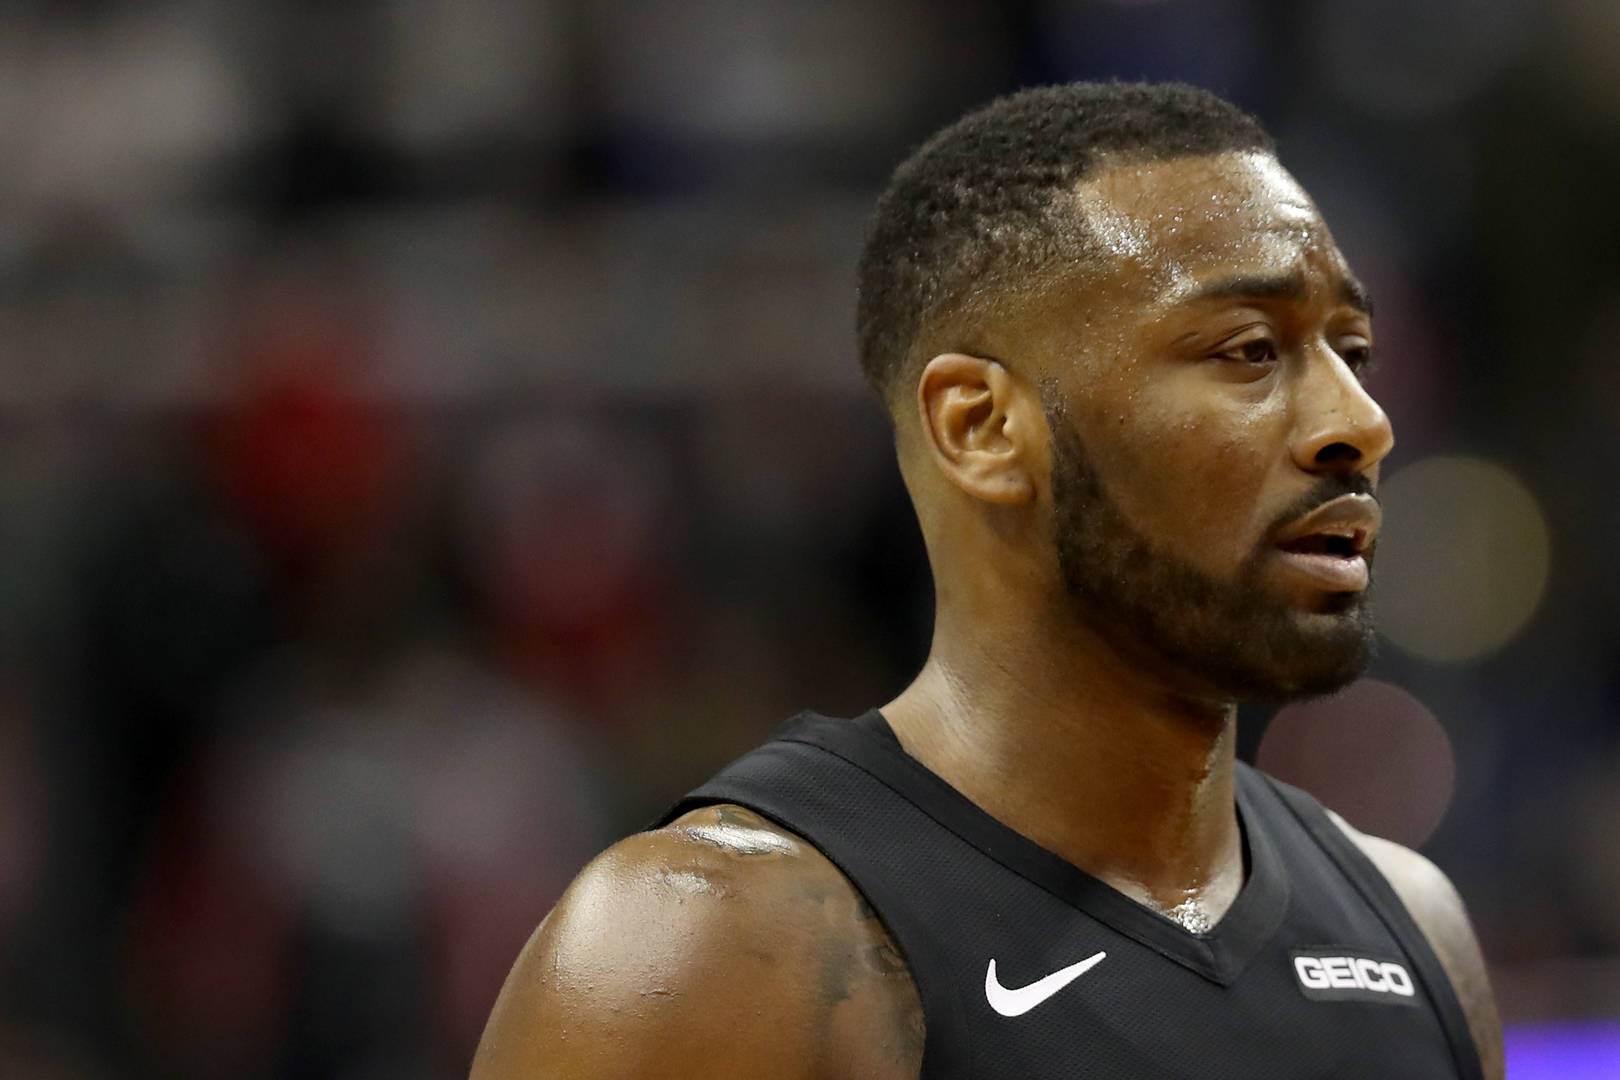 John Wall Out For The Season With Heel Injury